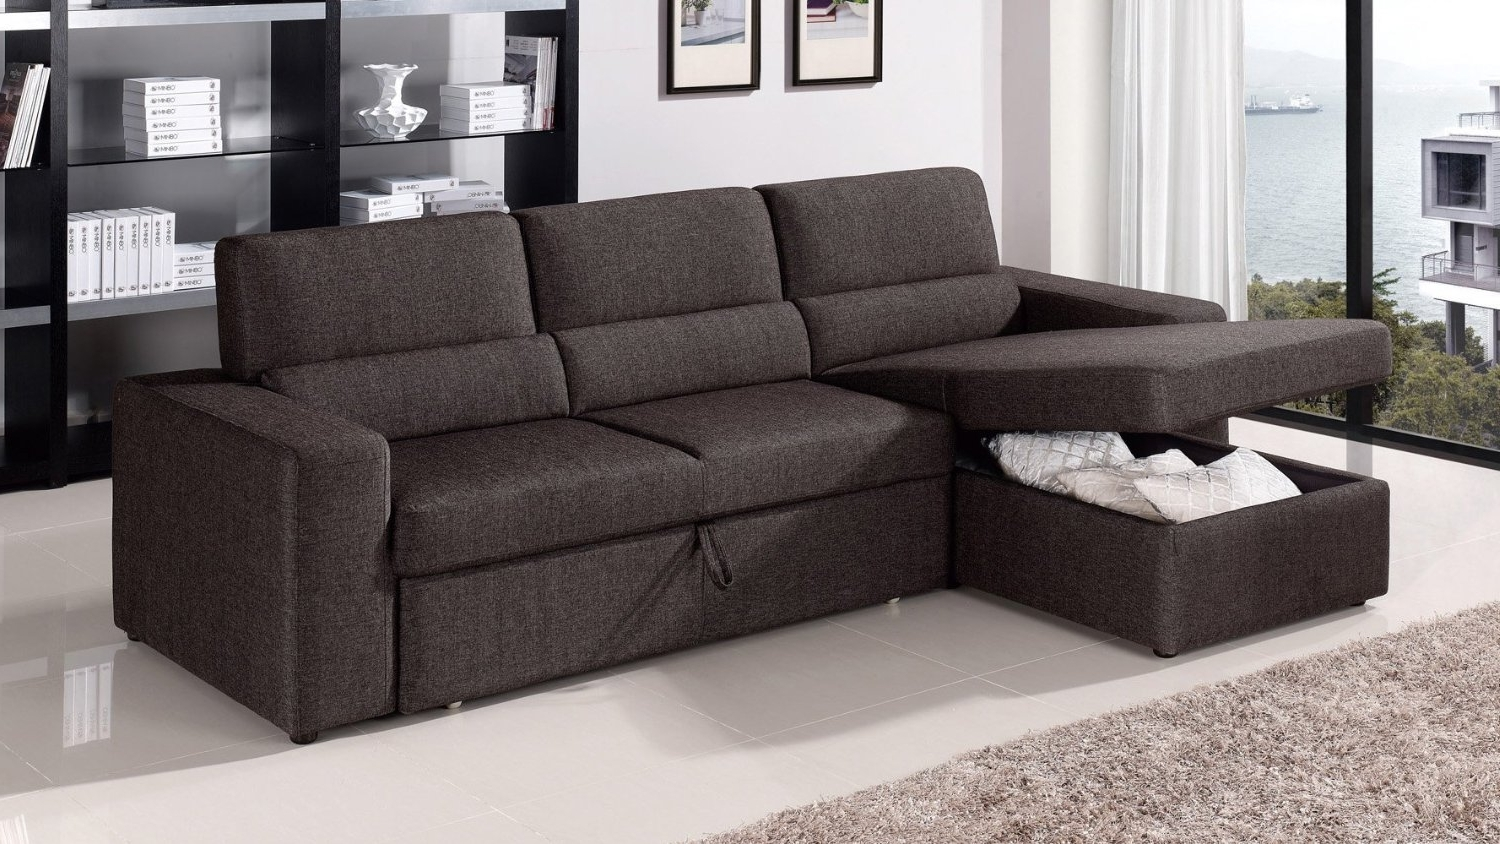 Fashionable Sofa Sleeper With Chaise Lounge – Ansugallery In Sofa Beds With Chaise Lounge (View 4 of 15)